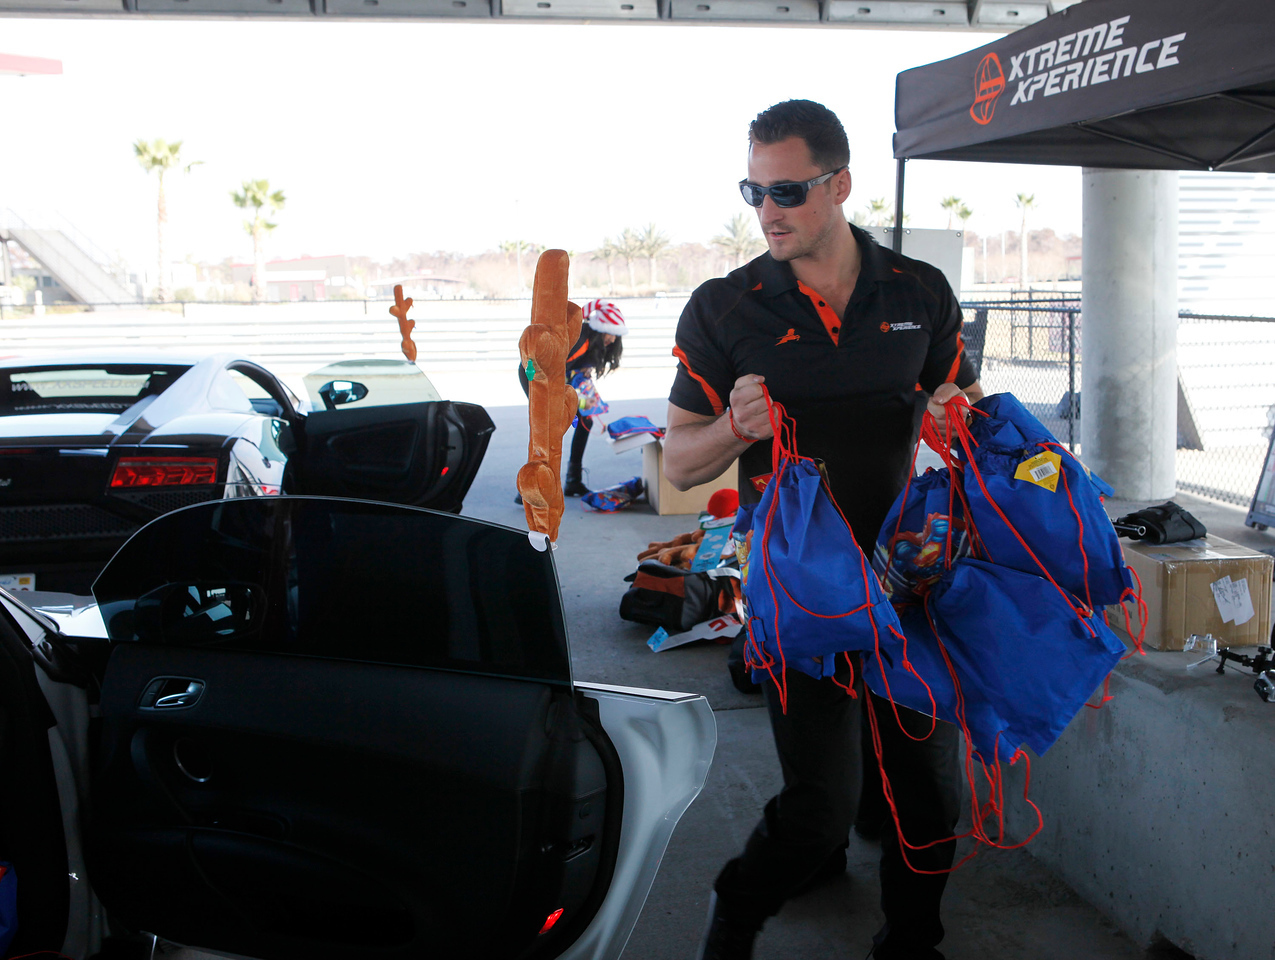 Xtreme Xperience President Adam Olalde loads bags of gifts into the XX Supercars.  (Bradley S. Pines / Xtreme Xperience)